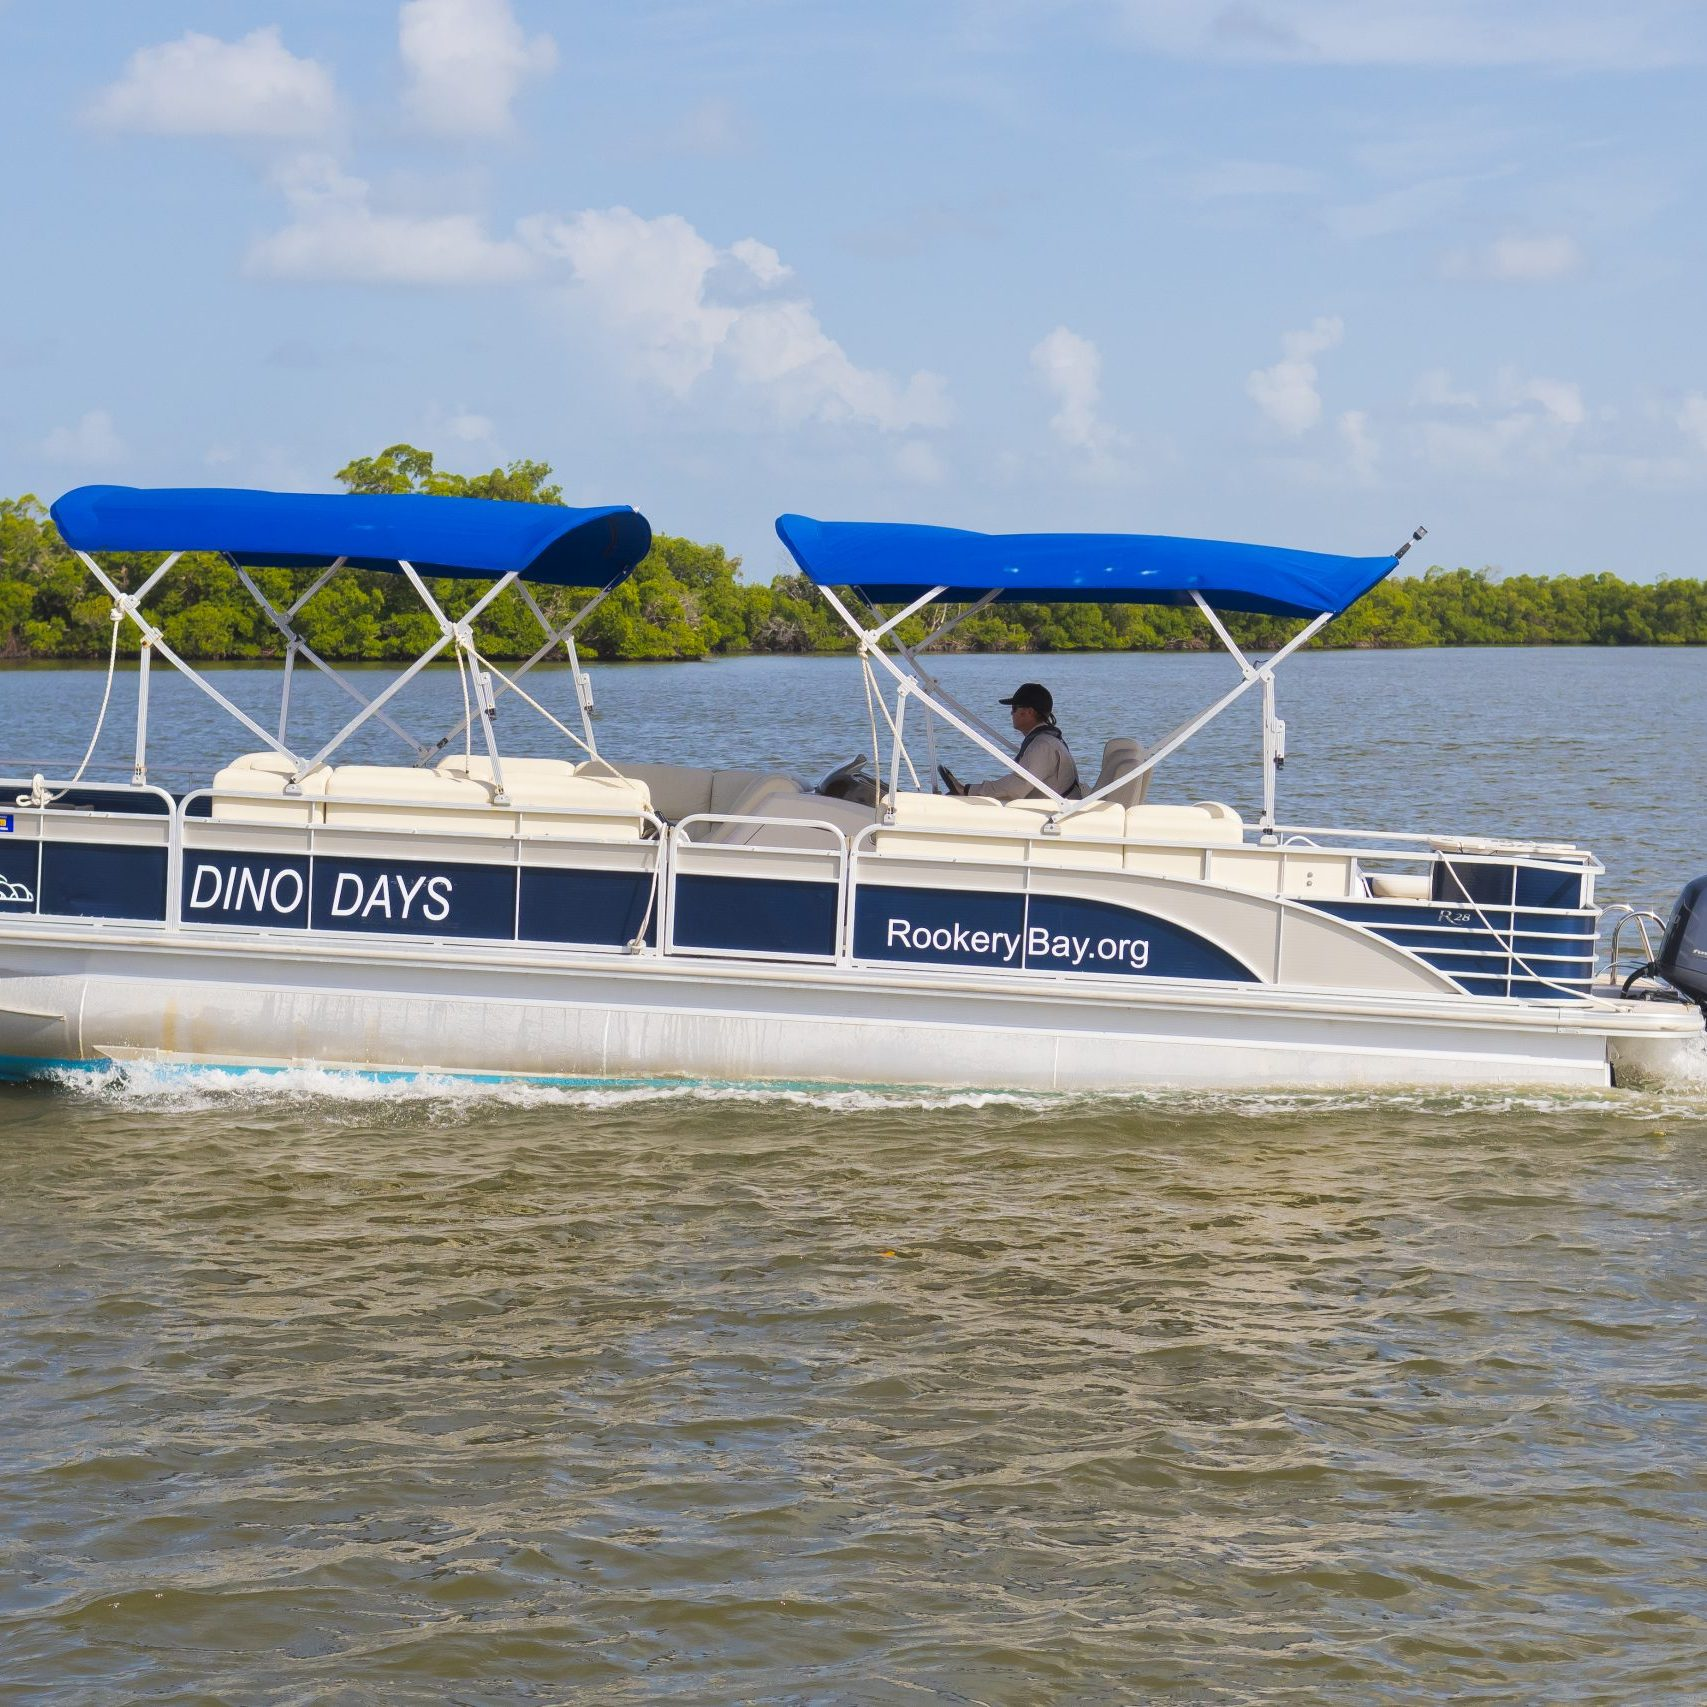 Dino Days Boat Tour | Ecotours | Rookery Bay National Estuarine Research Reserve